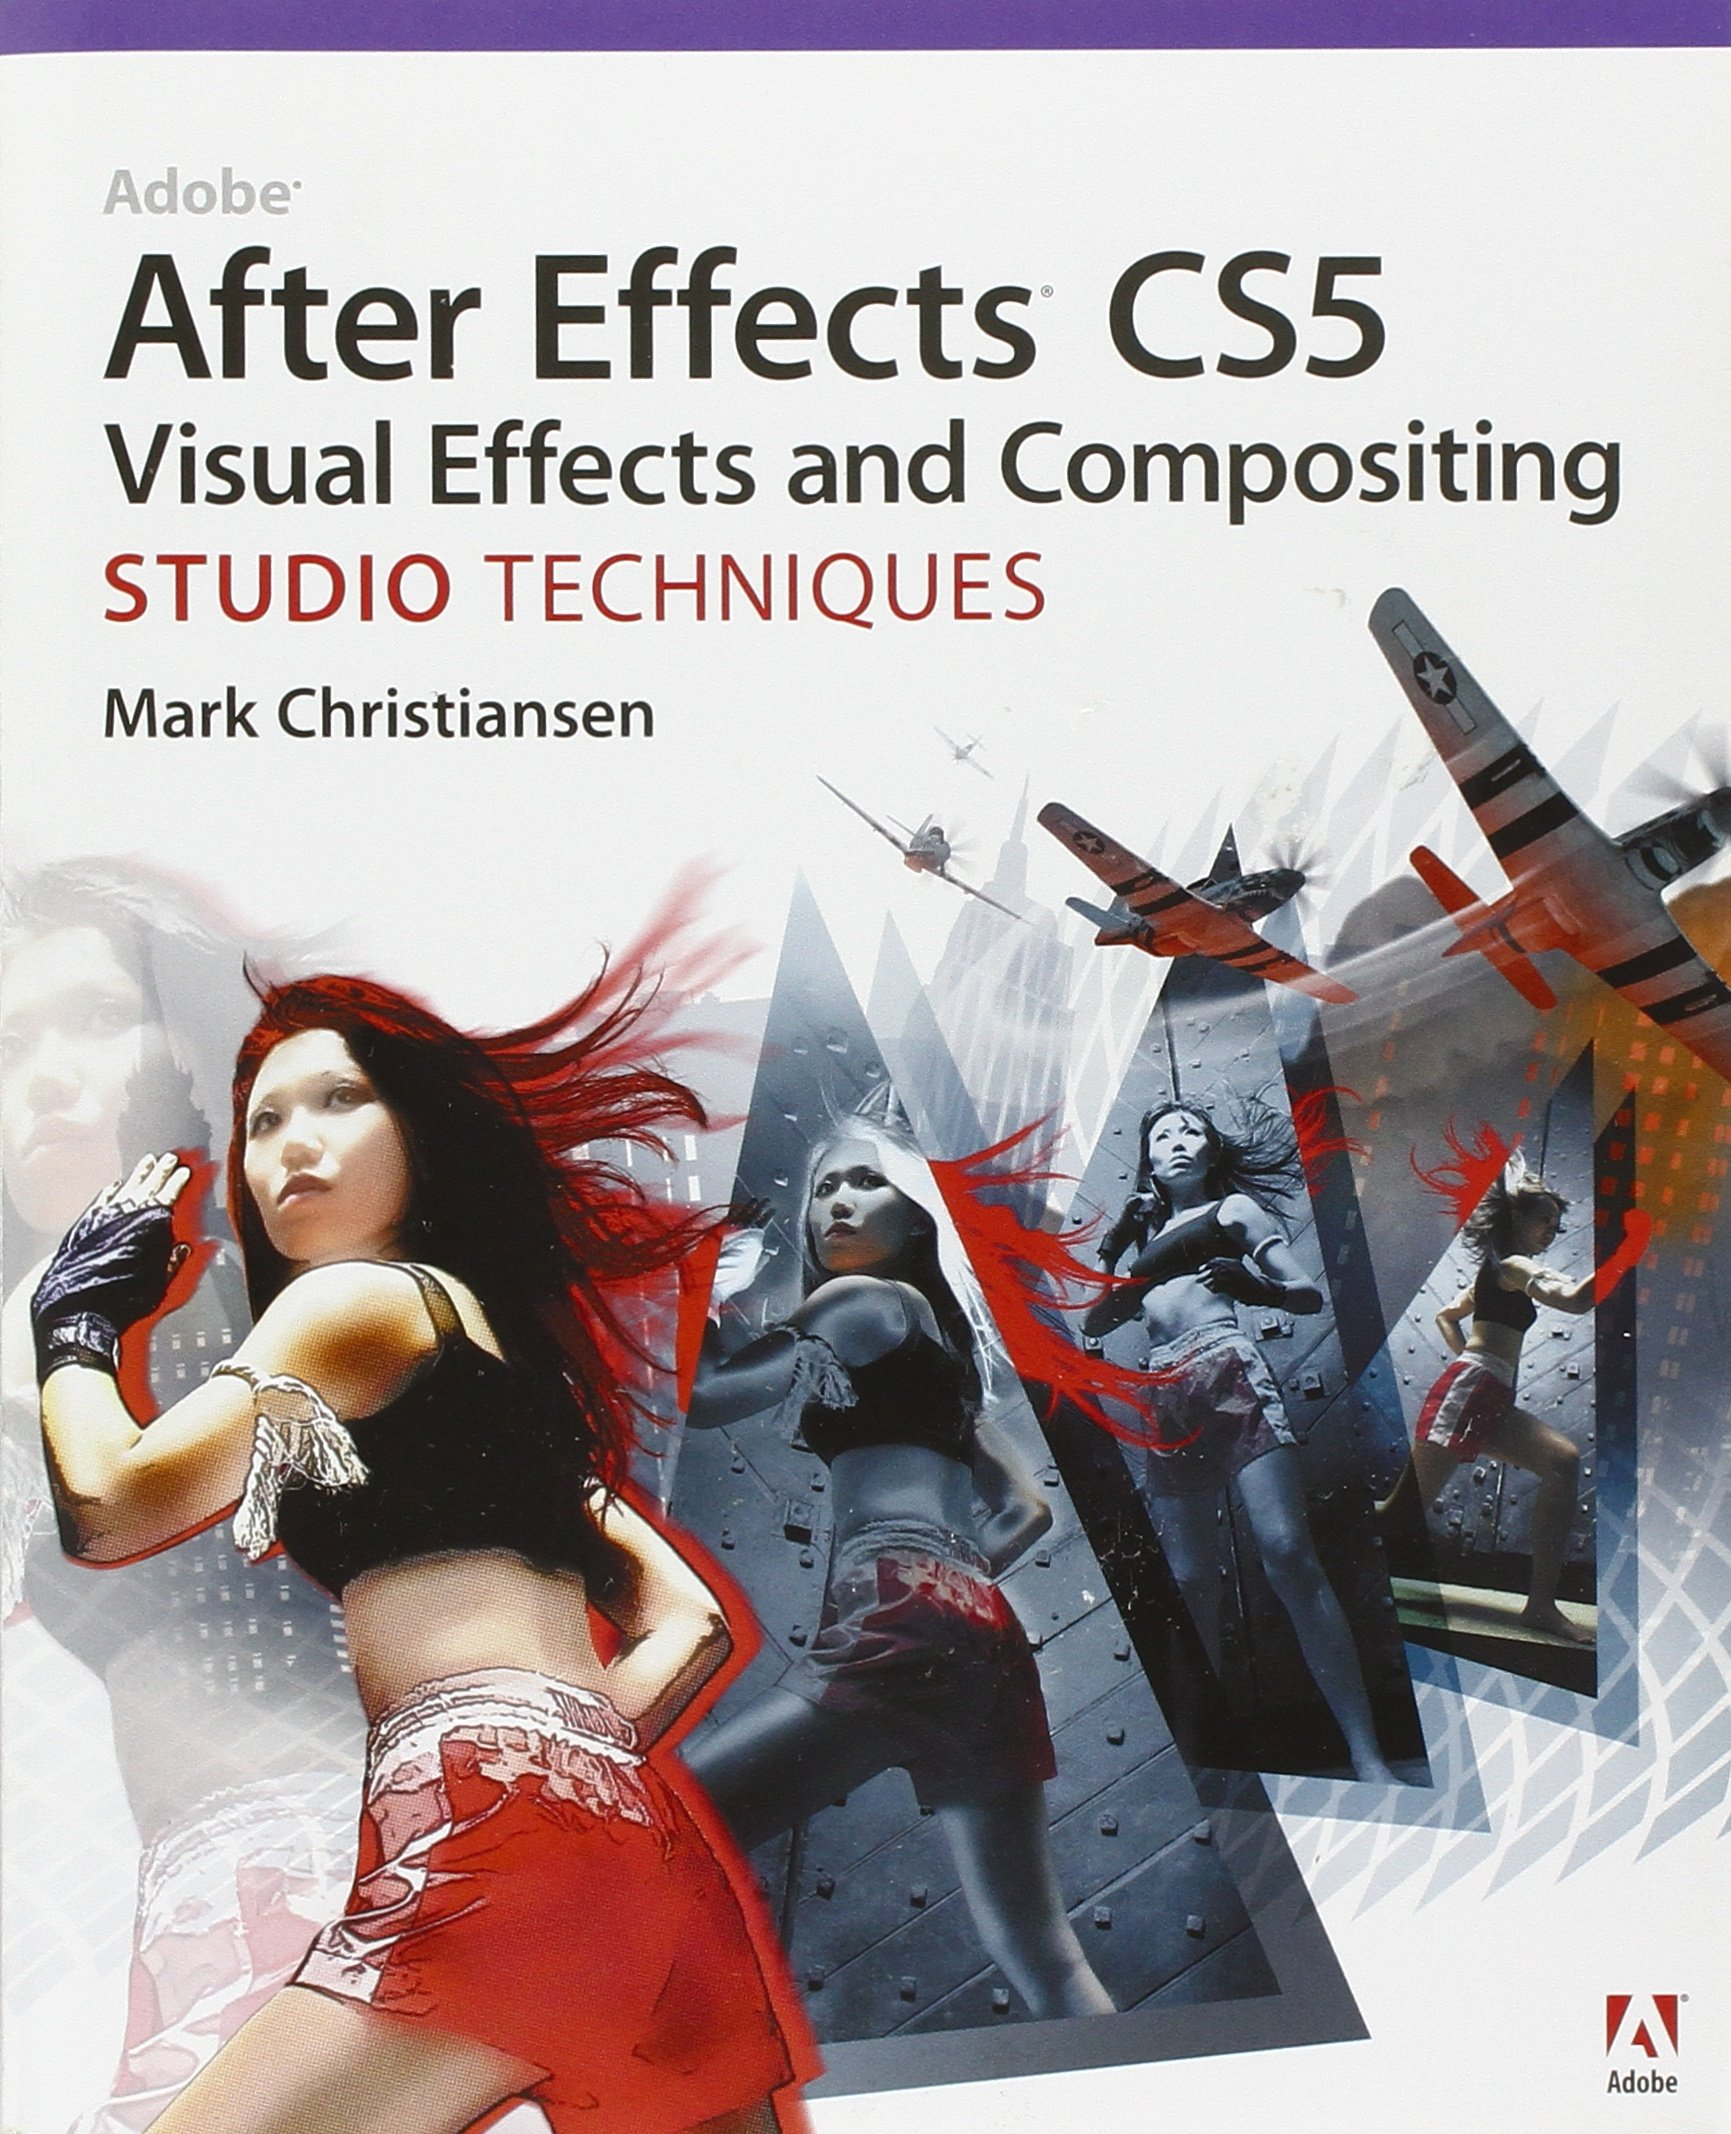 Adobe After Effects CS5 Visual Effects and Compositing Studio Techniques:  Amazon.co.uk: Mark Christiansen: 9780321719621: Books